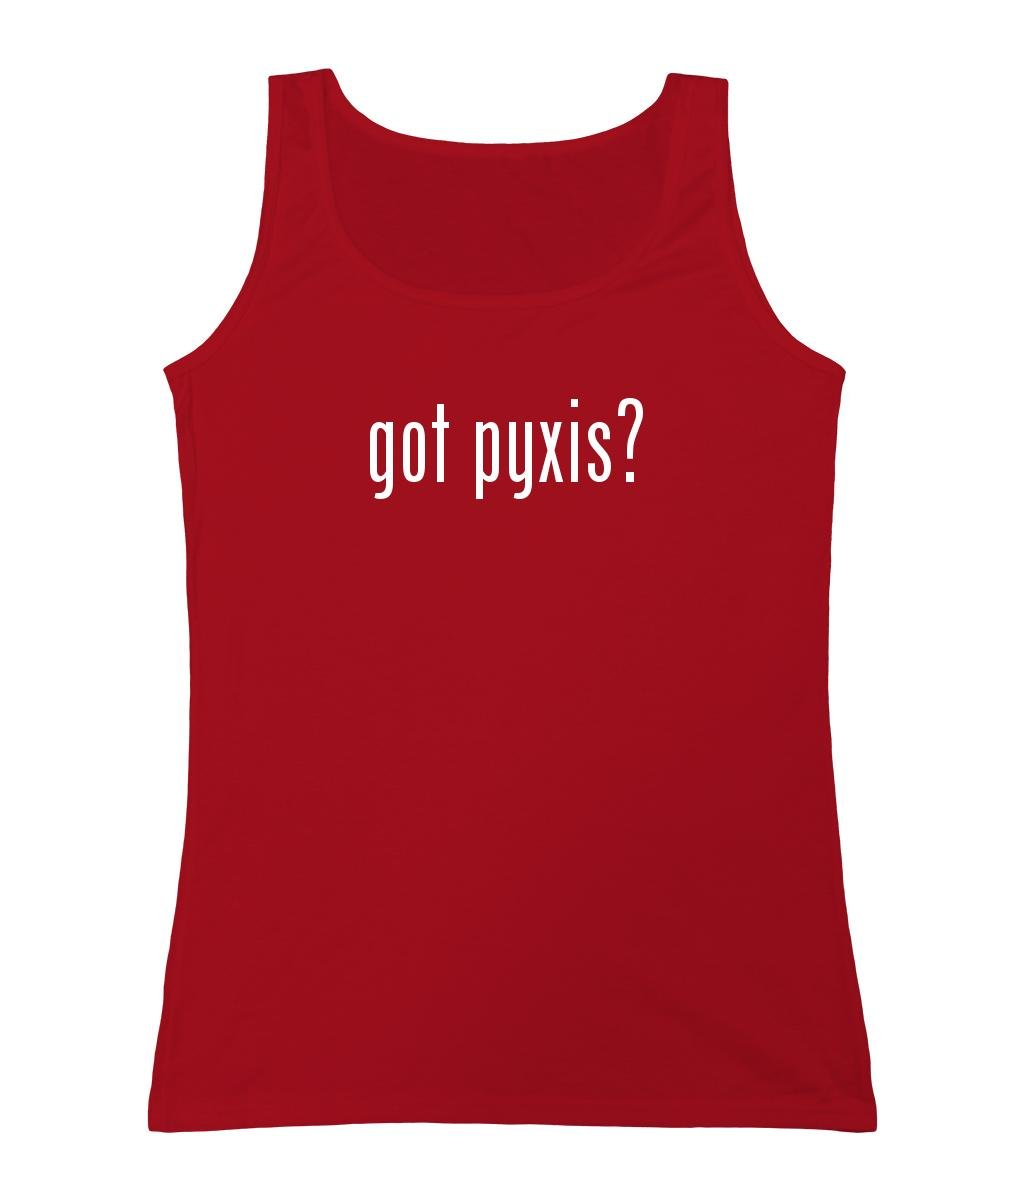 Buy Pyxis Tank Now!